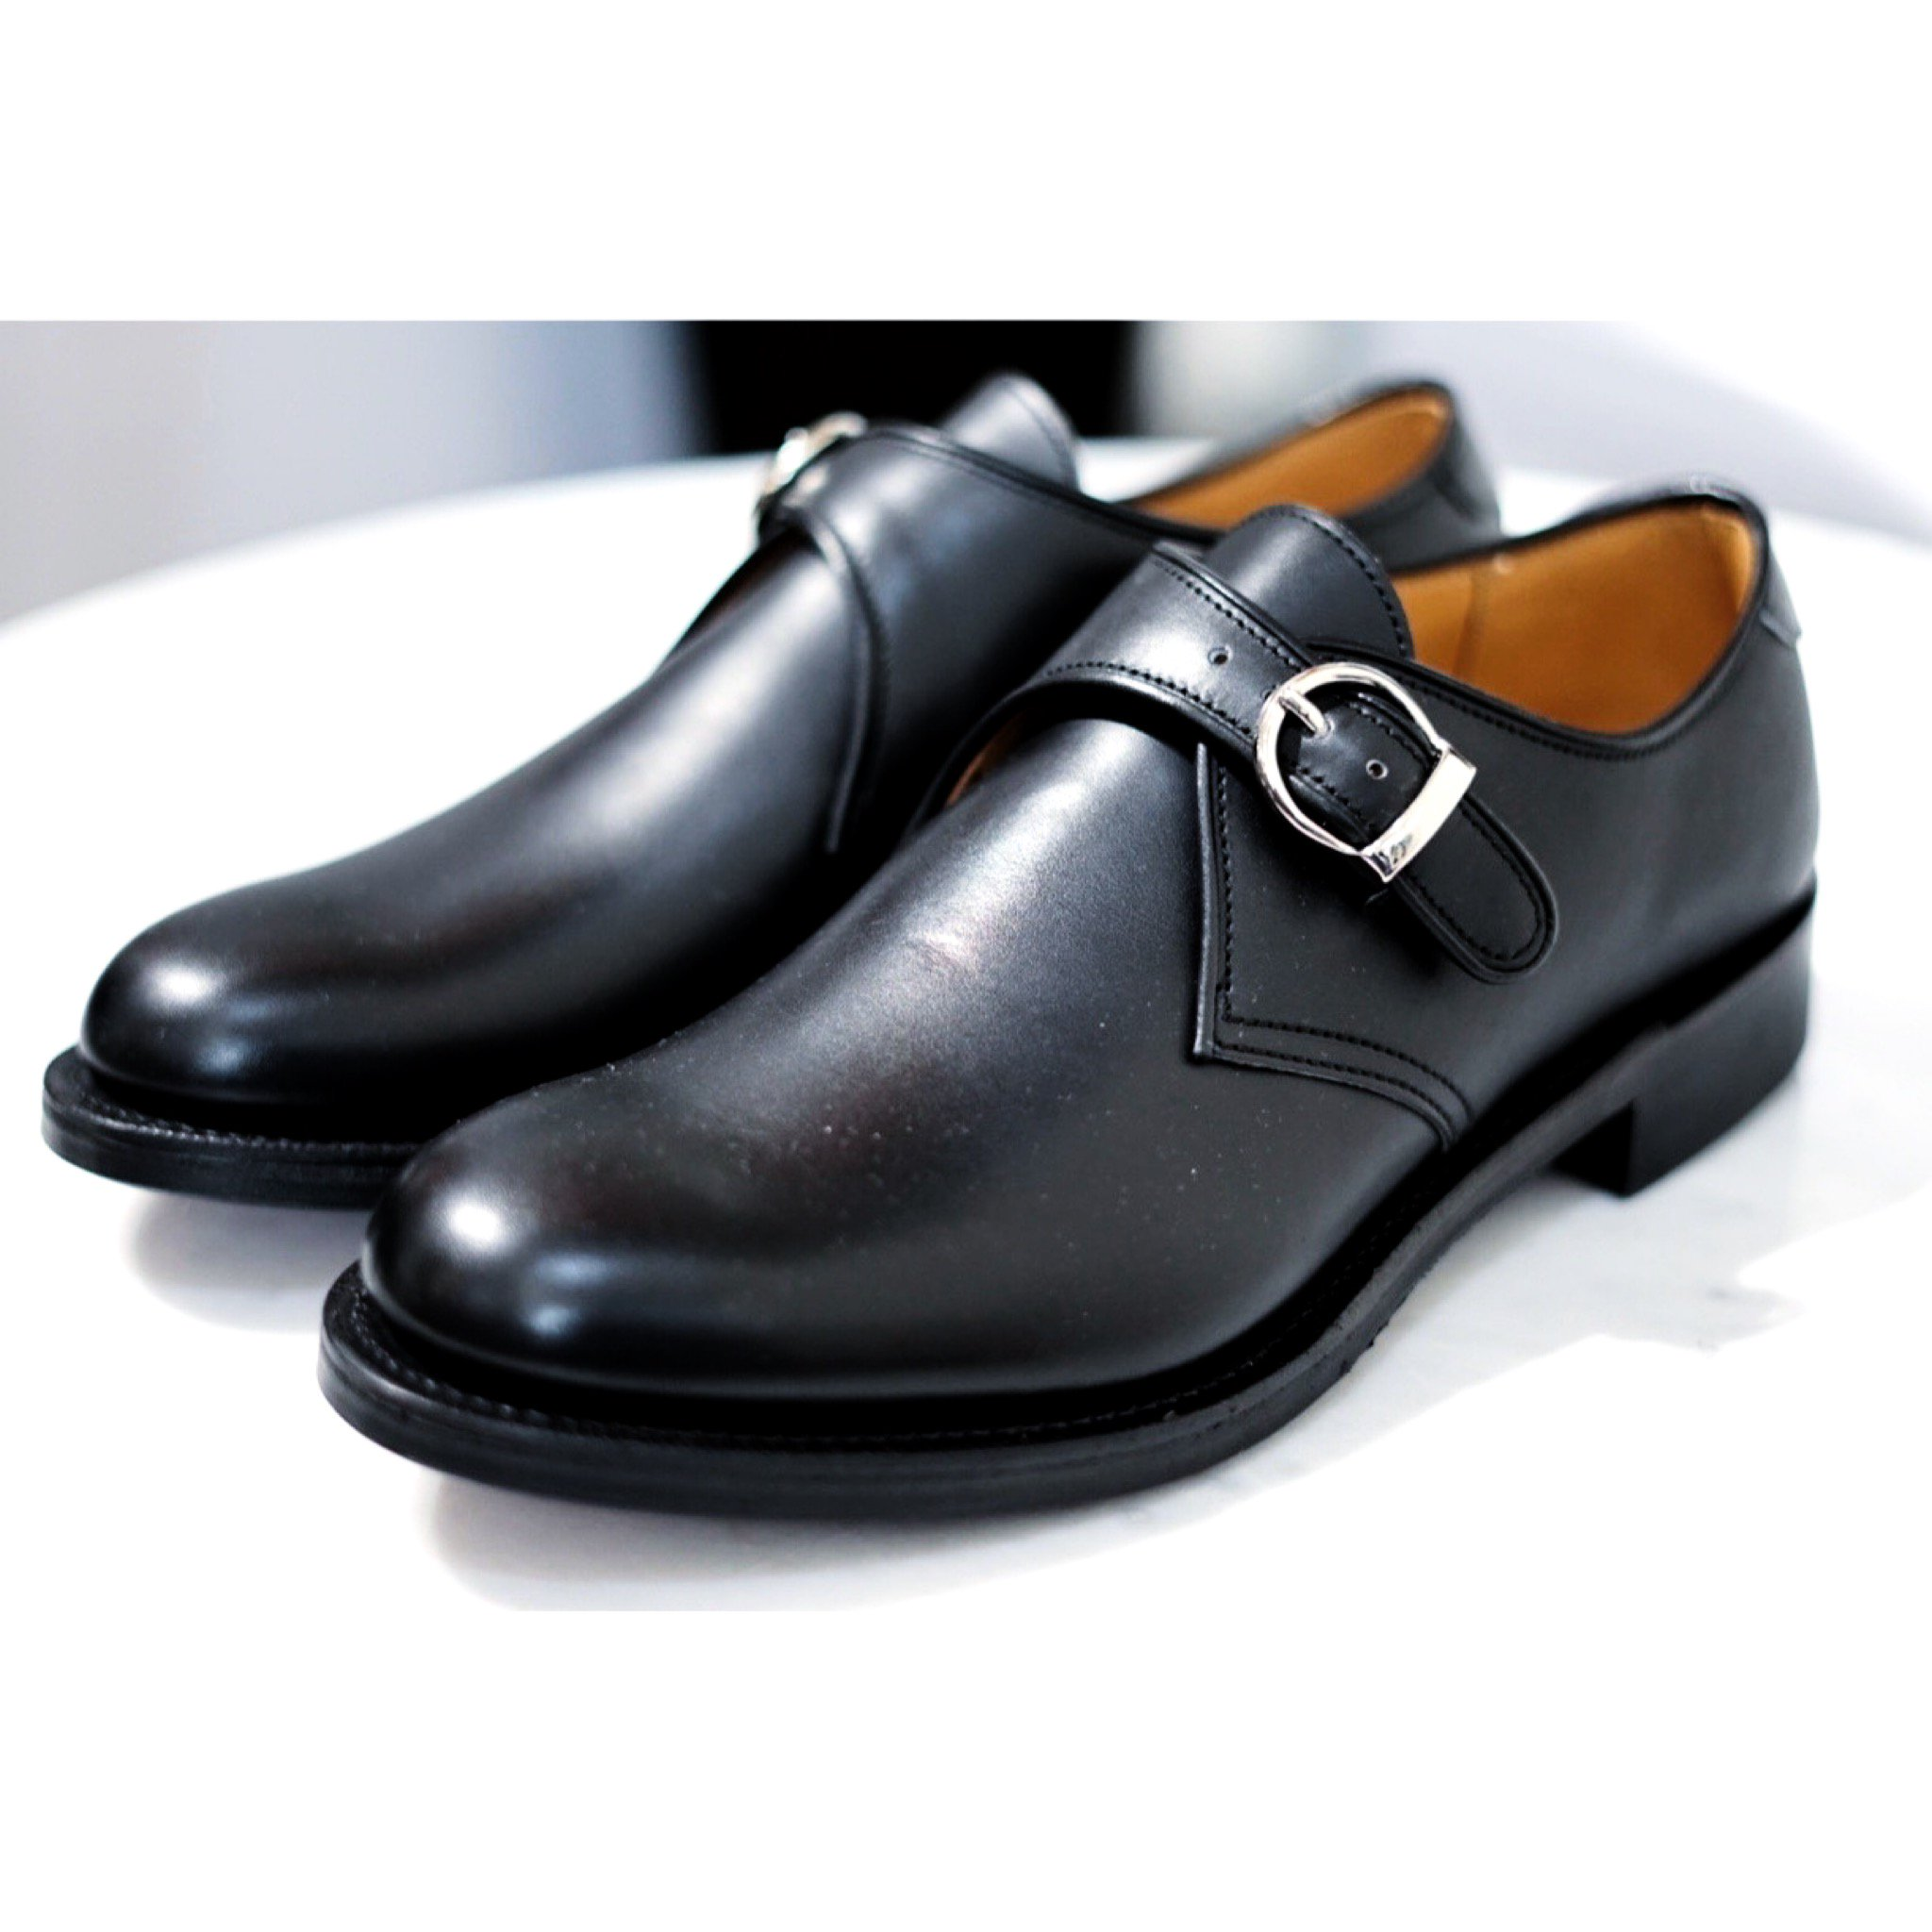 MAKERS-10th ANNIVERSARY SINGLE MONK STRAP CALF